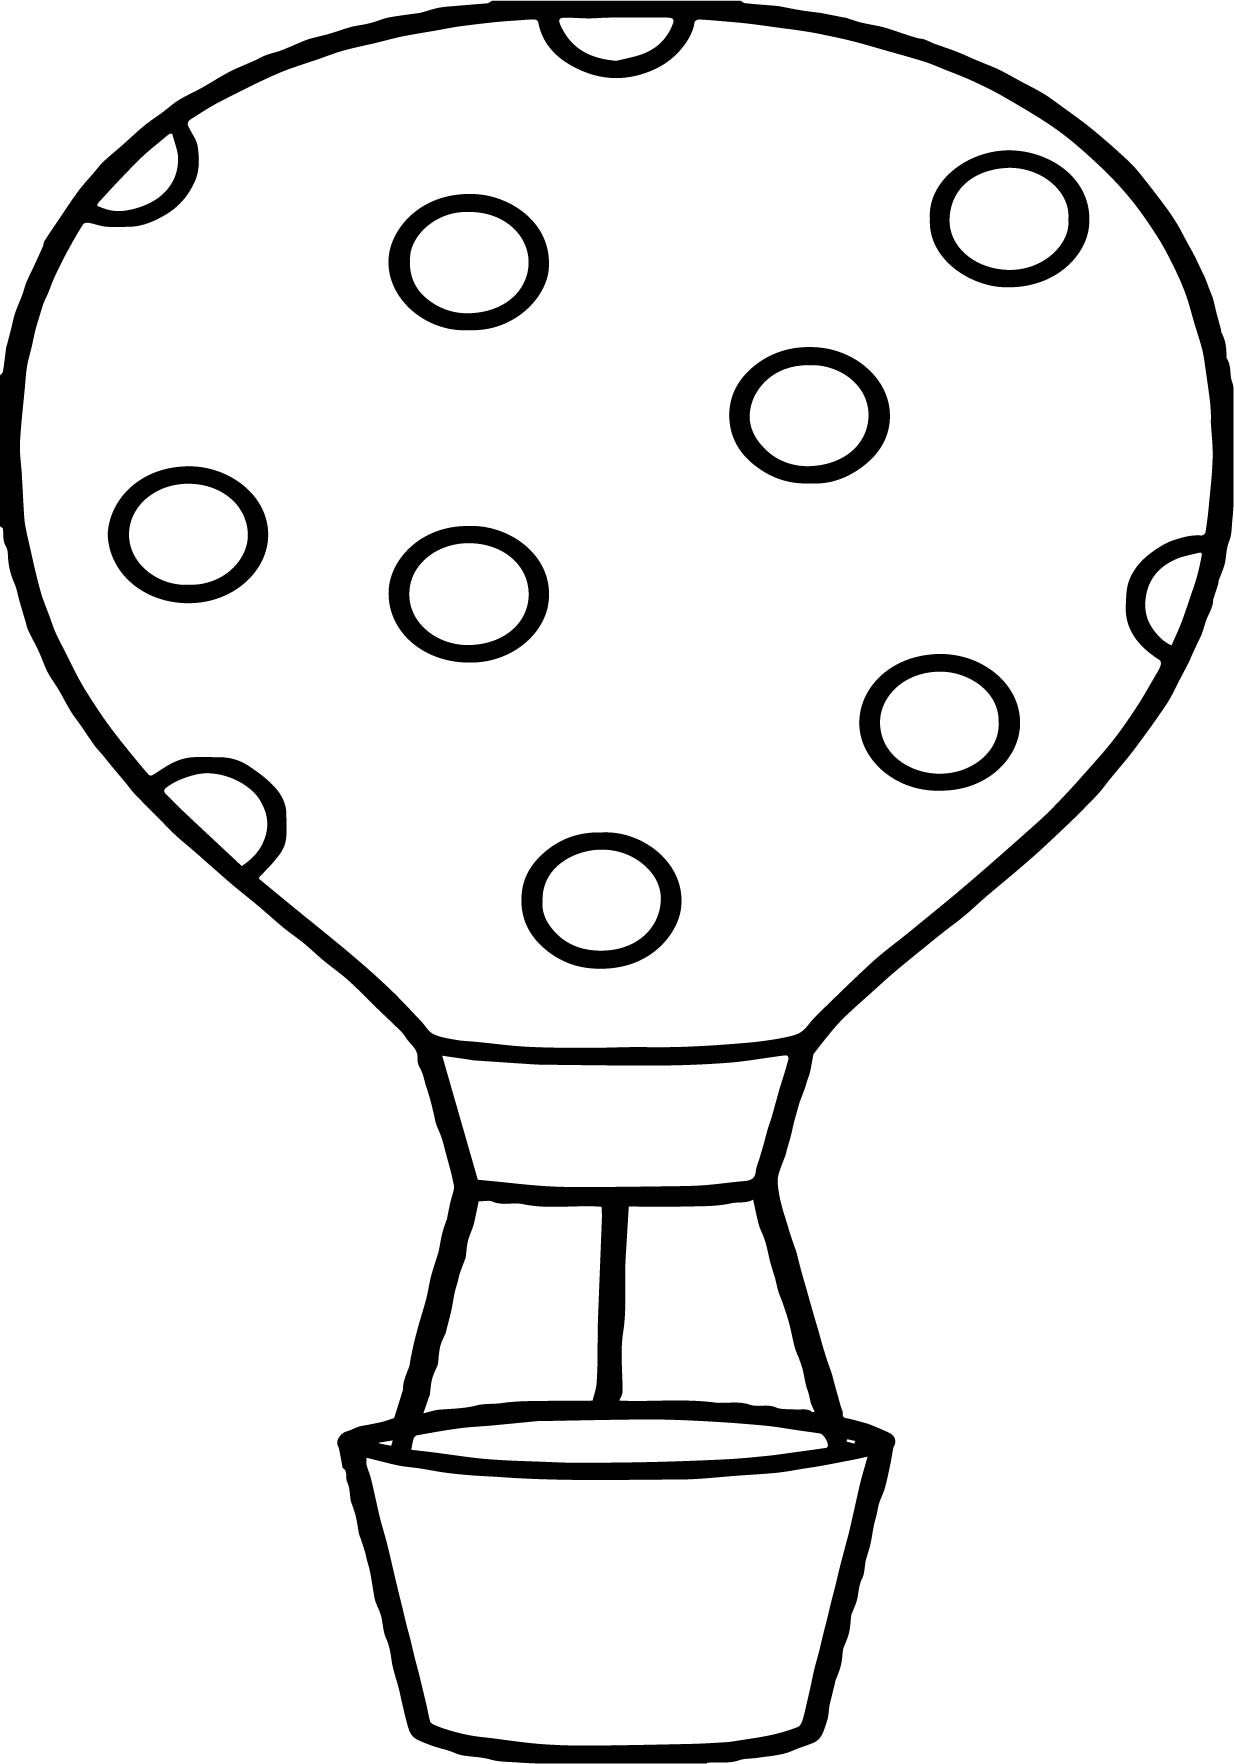 Dotting Air Balloon Coloring Page